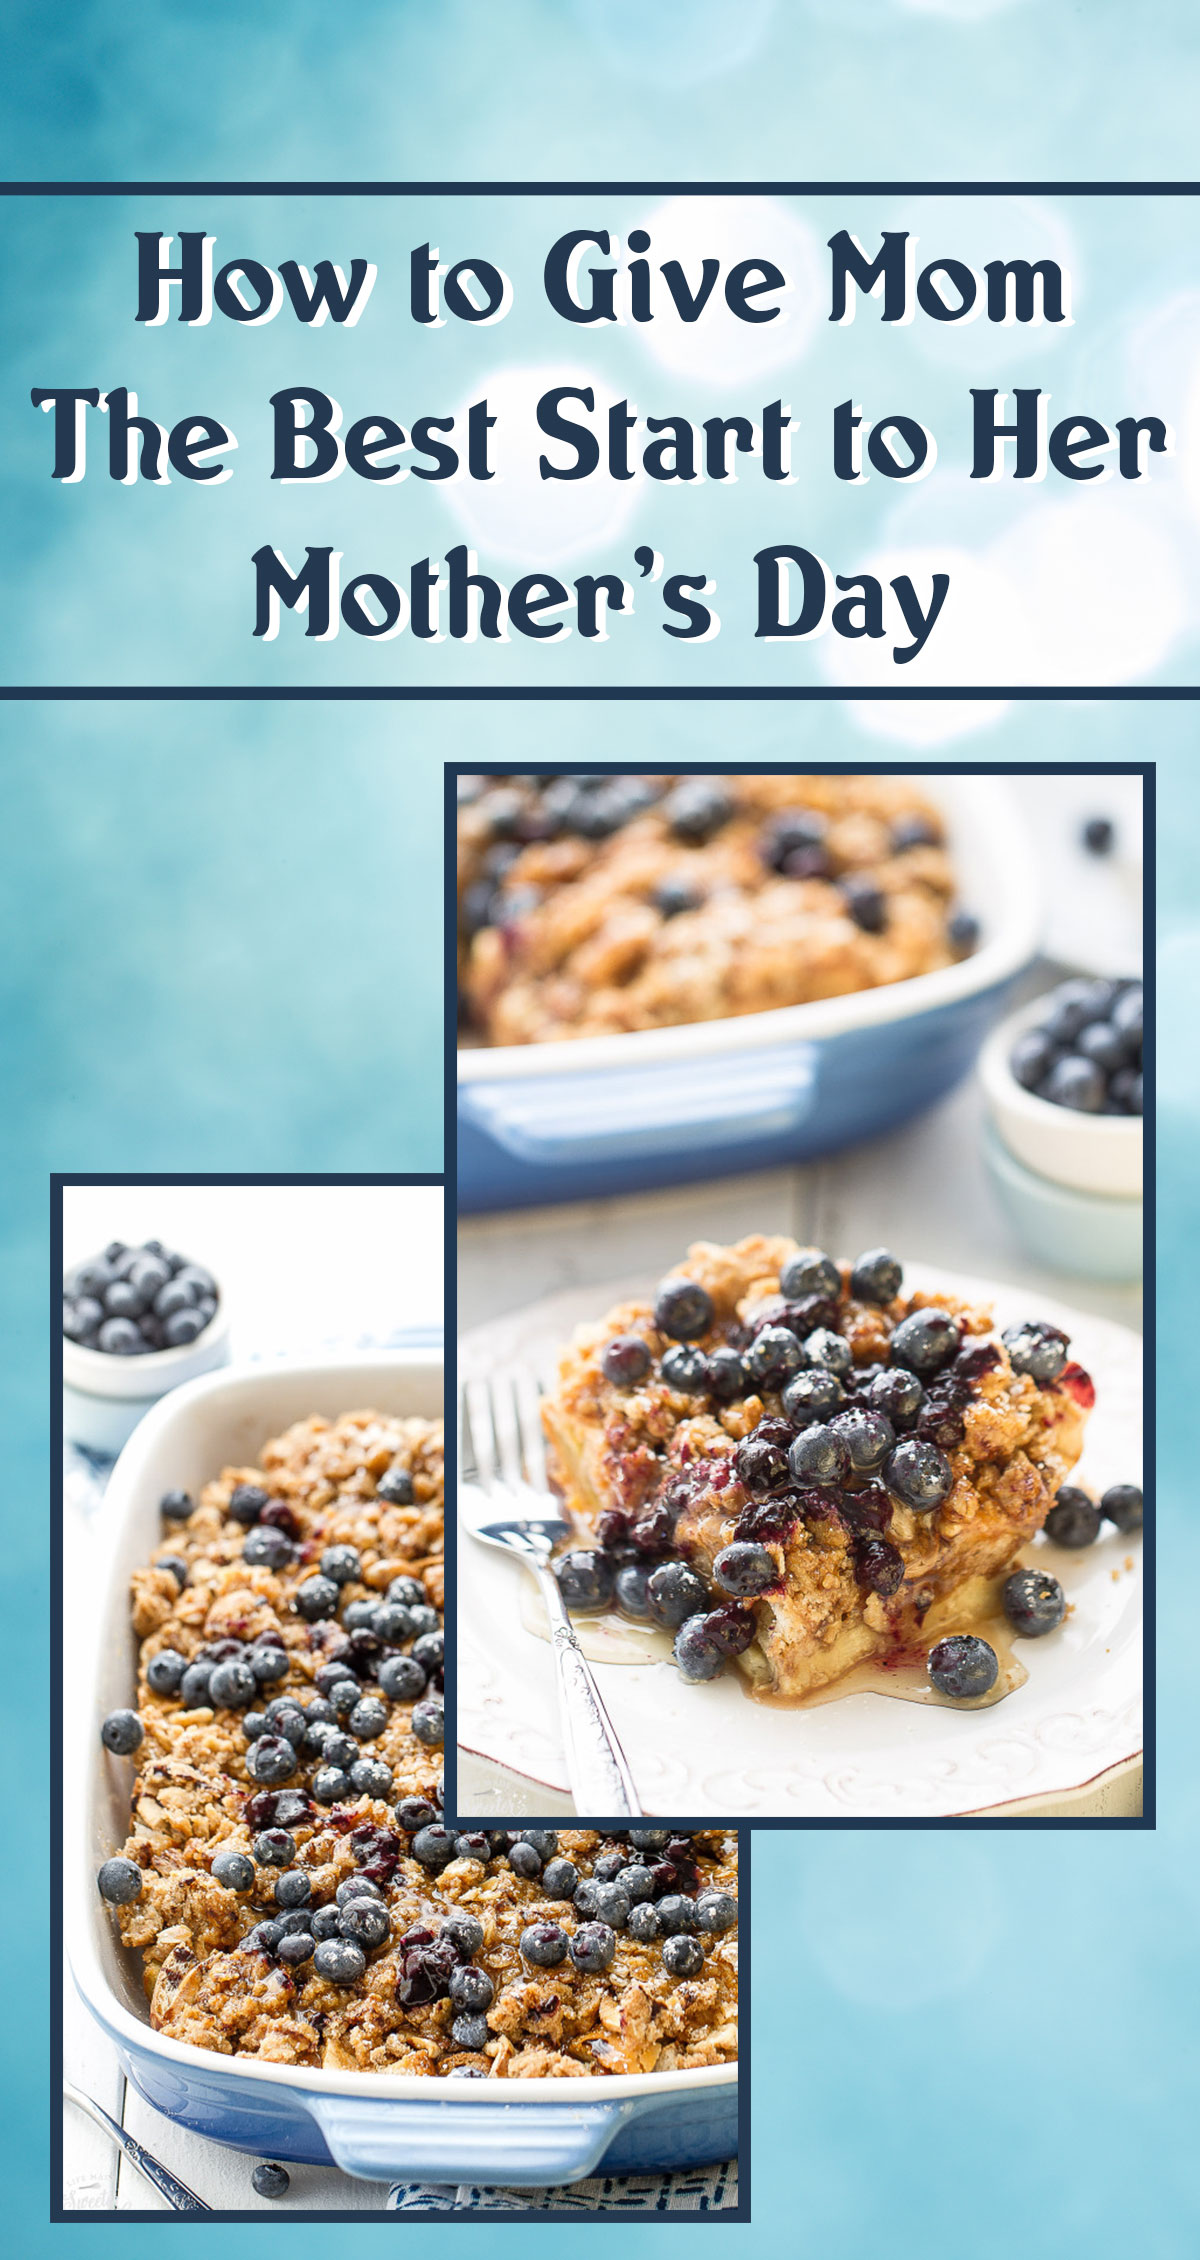 How to Give Mom the Best Start to Her Mother's Day Pin